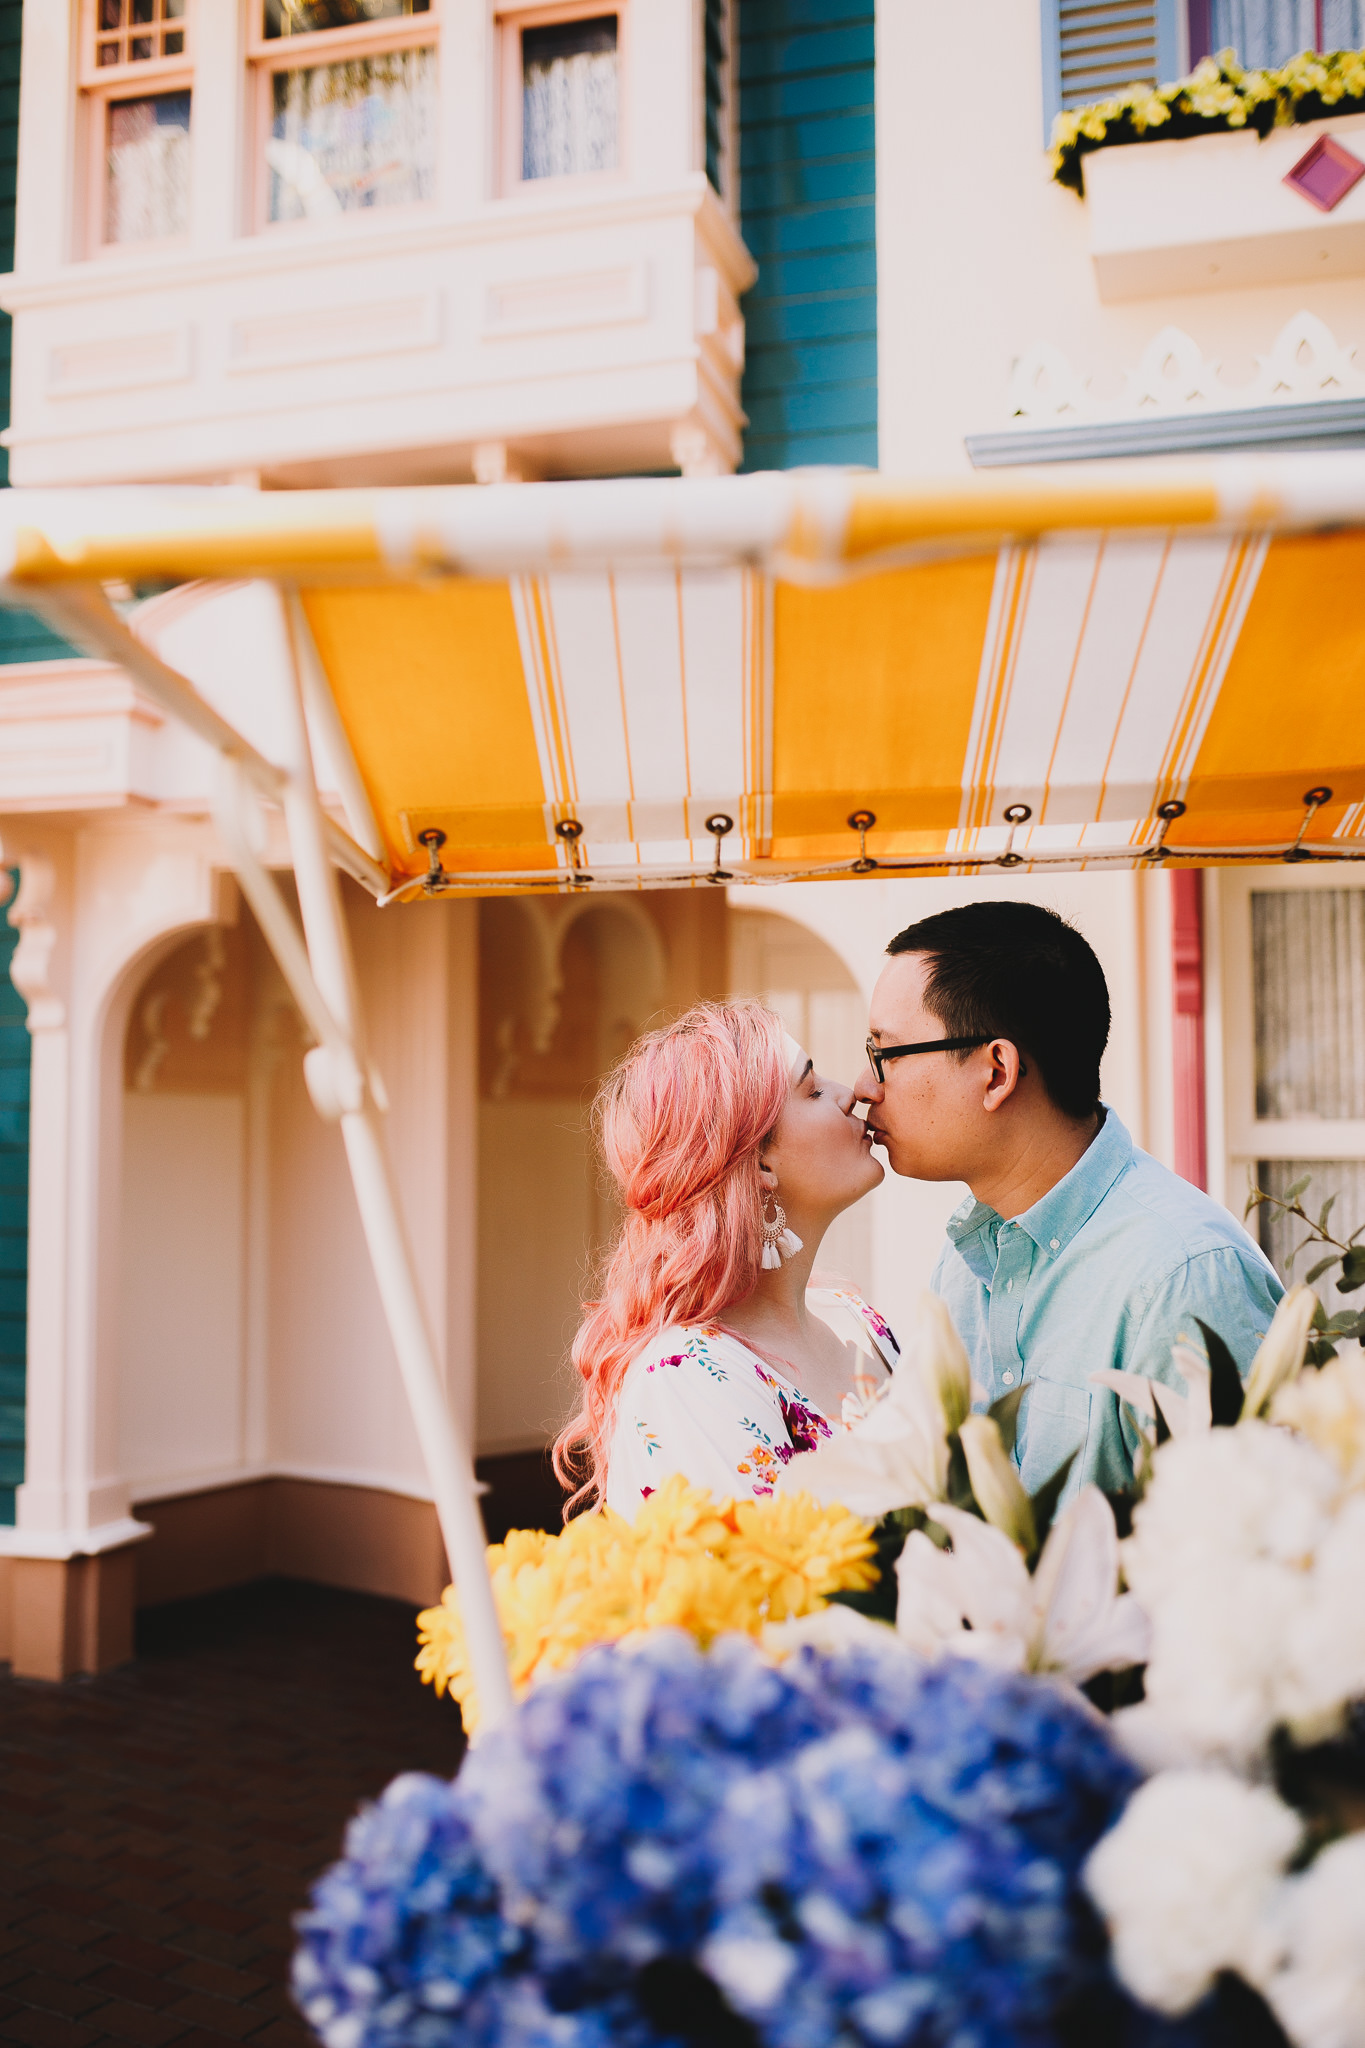 Archer Inspired Photography Disneyland Engagement Wedding Session Southern California Kayla and Kevin Lifestyle Documentary-165.jpg